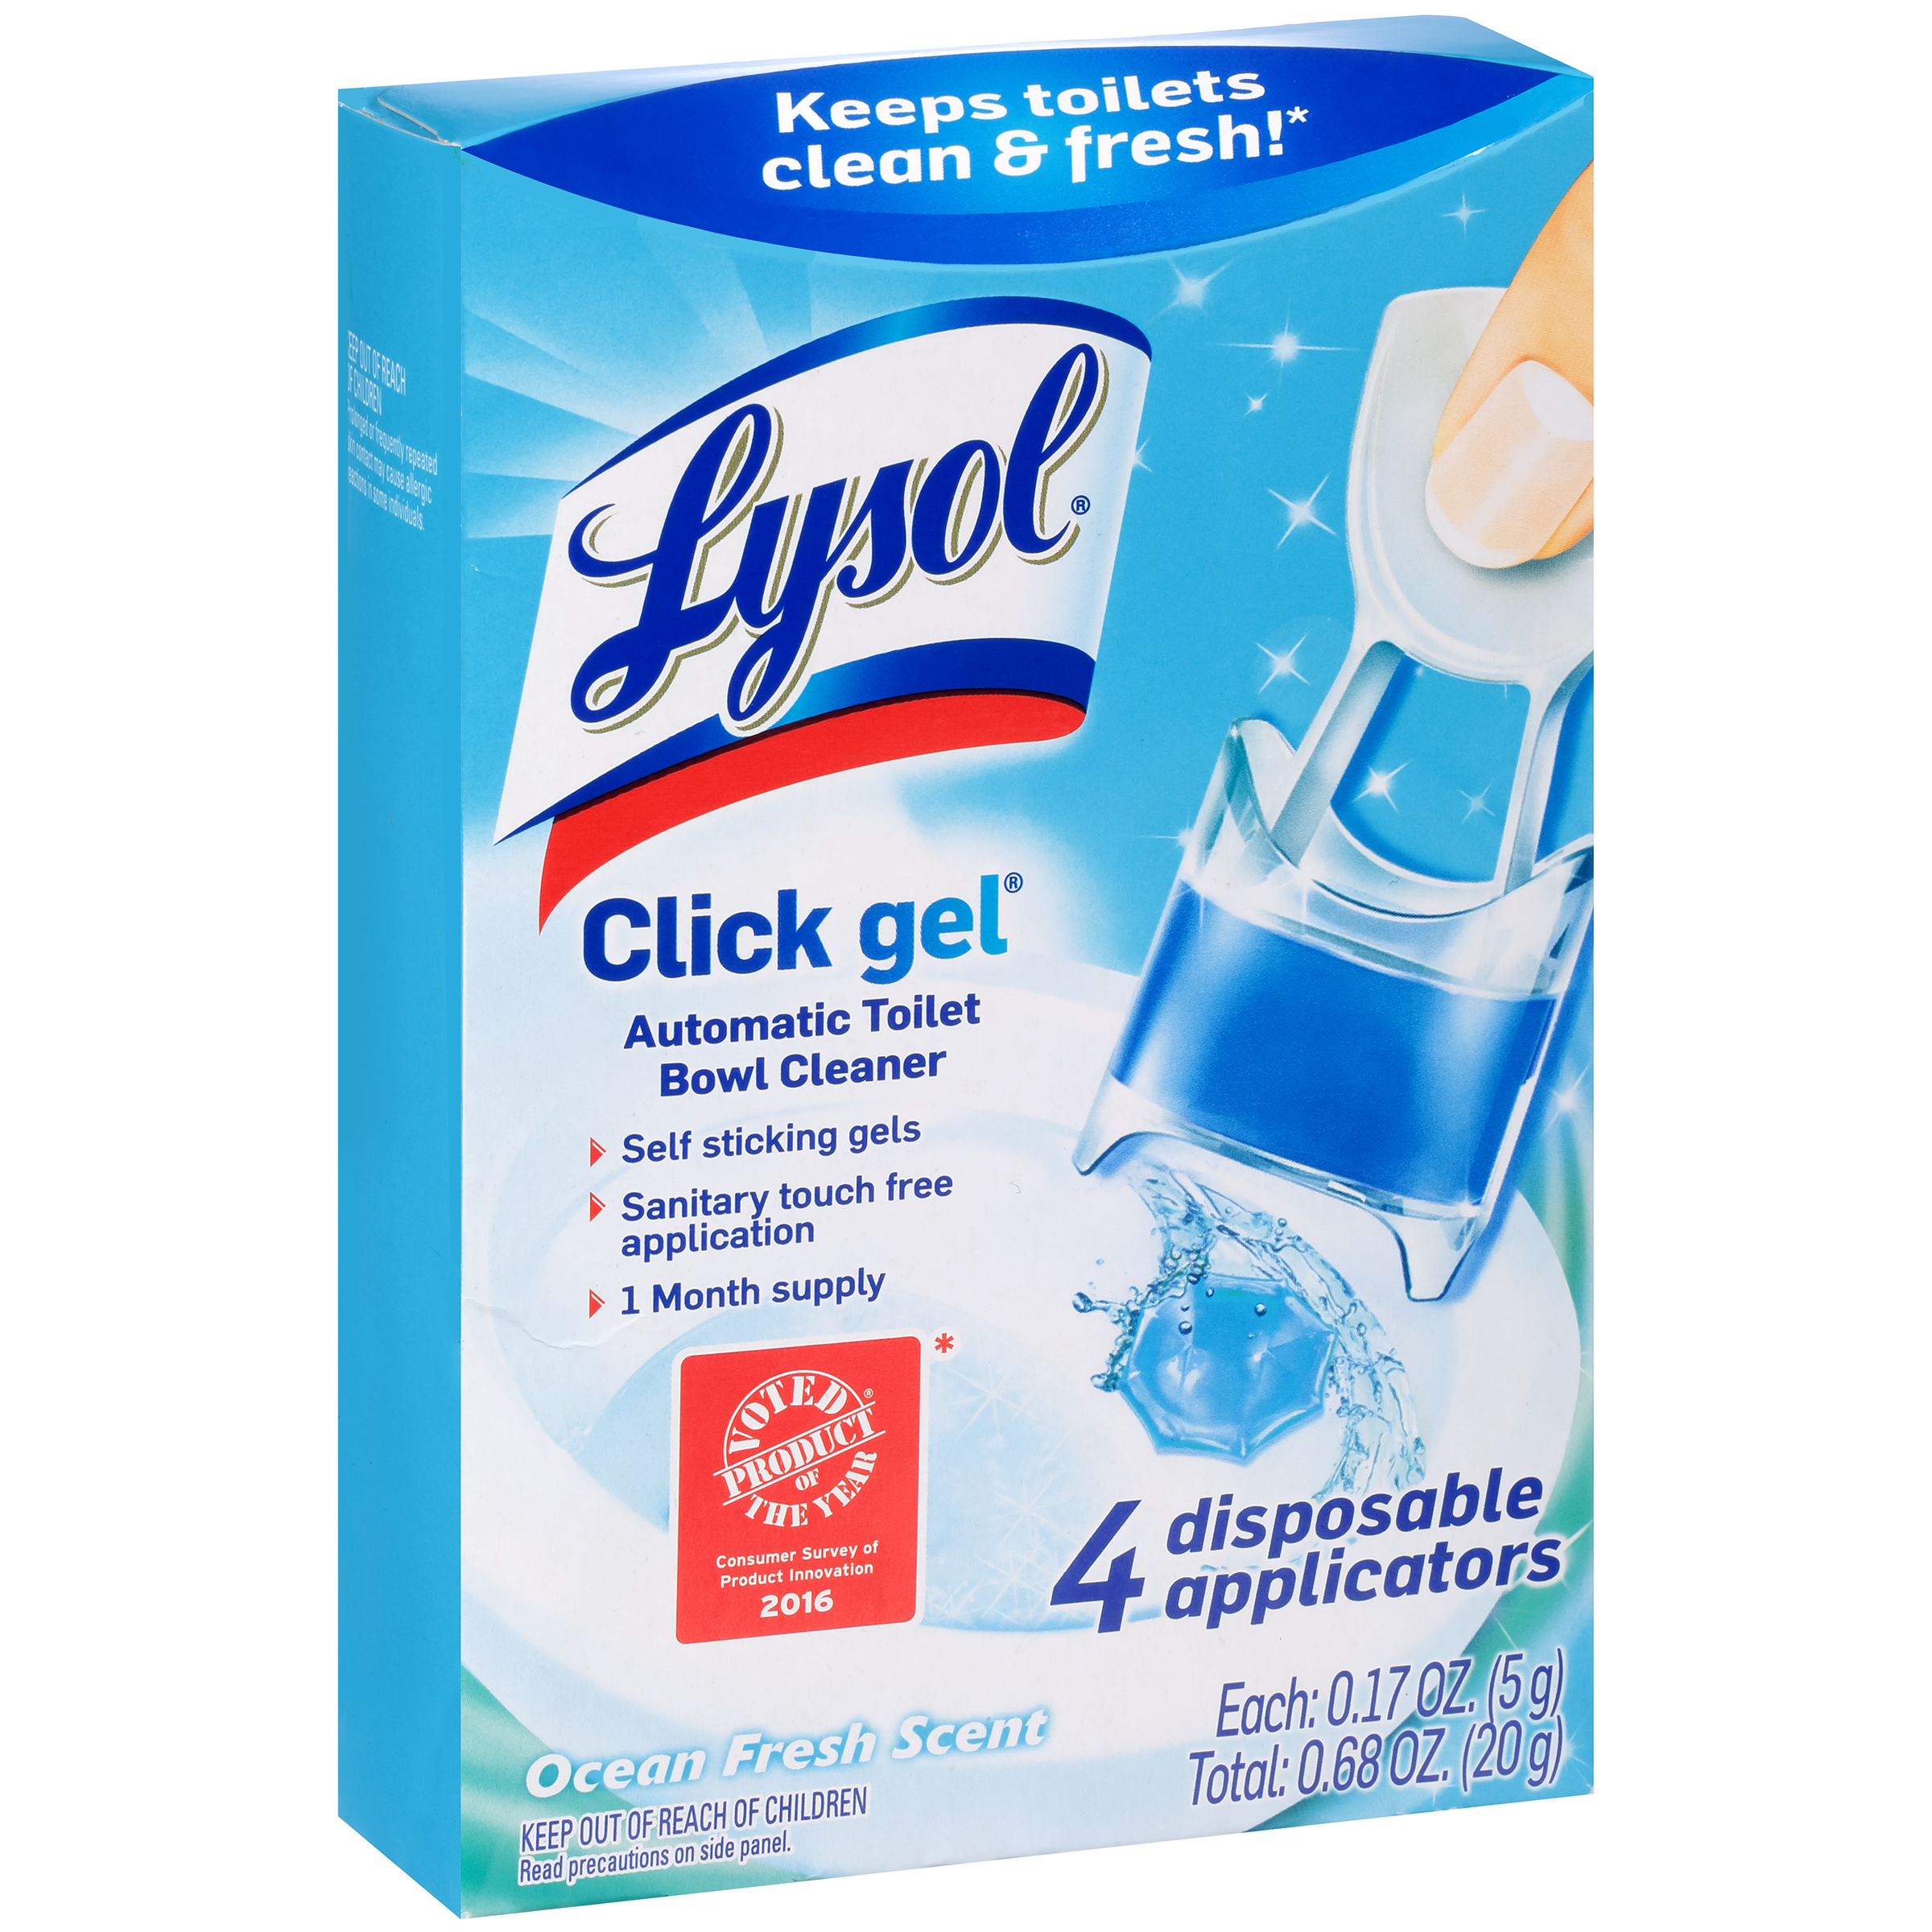 Lysol Automatic Toilet Bowl Cleaning Click Gel, Ocean Fresh Scent, 4 Count